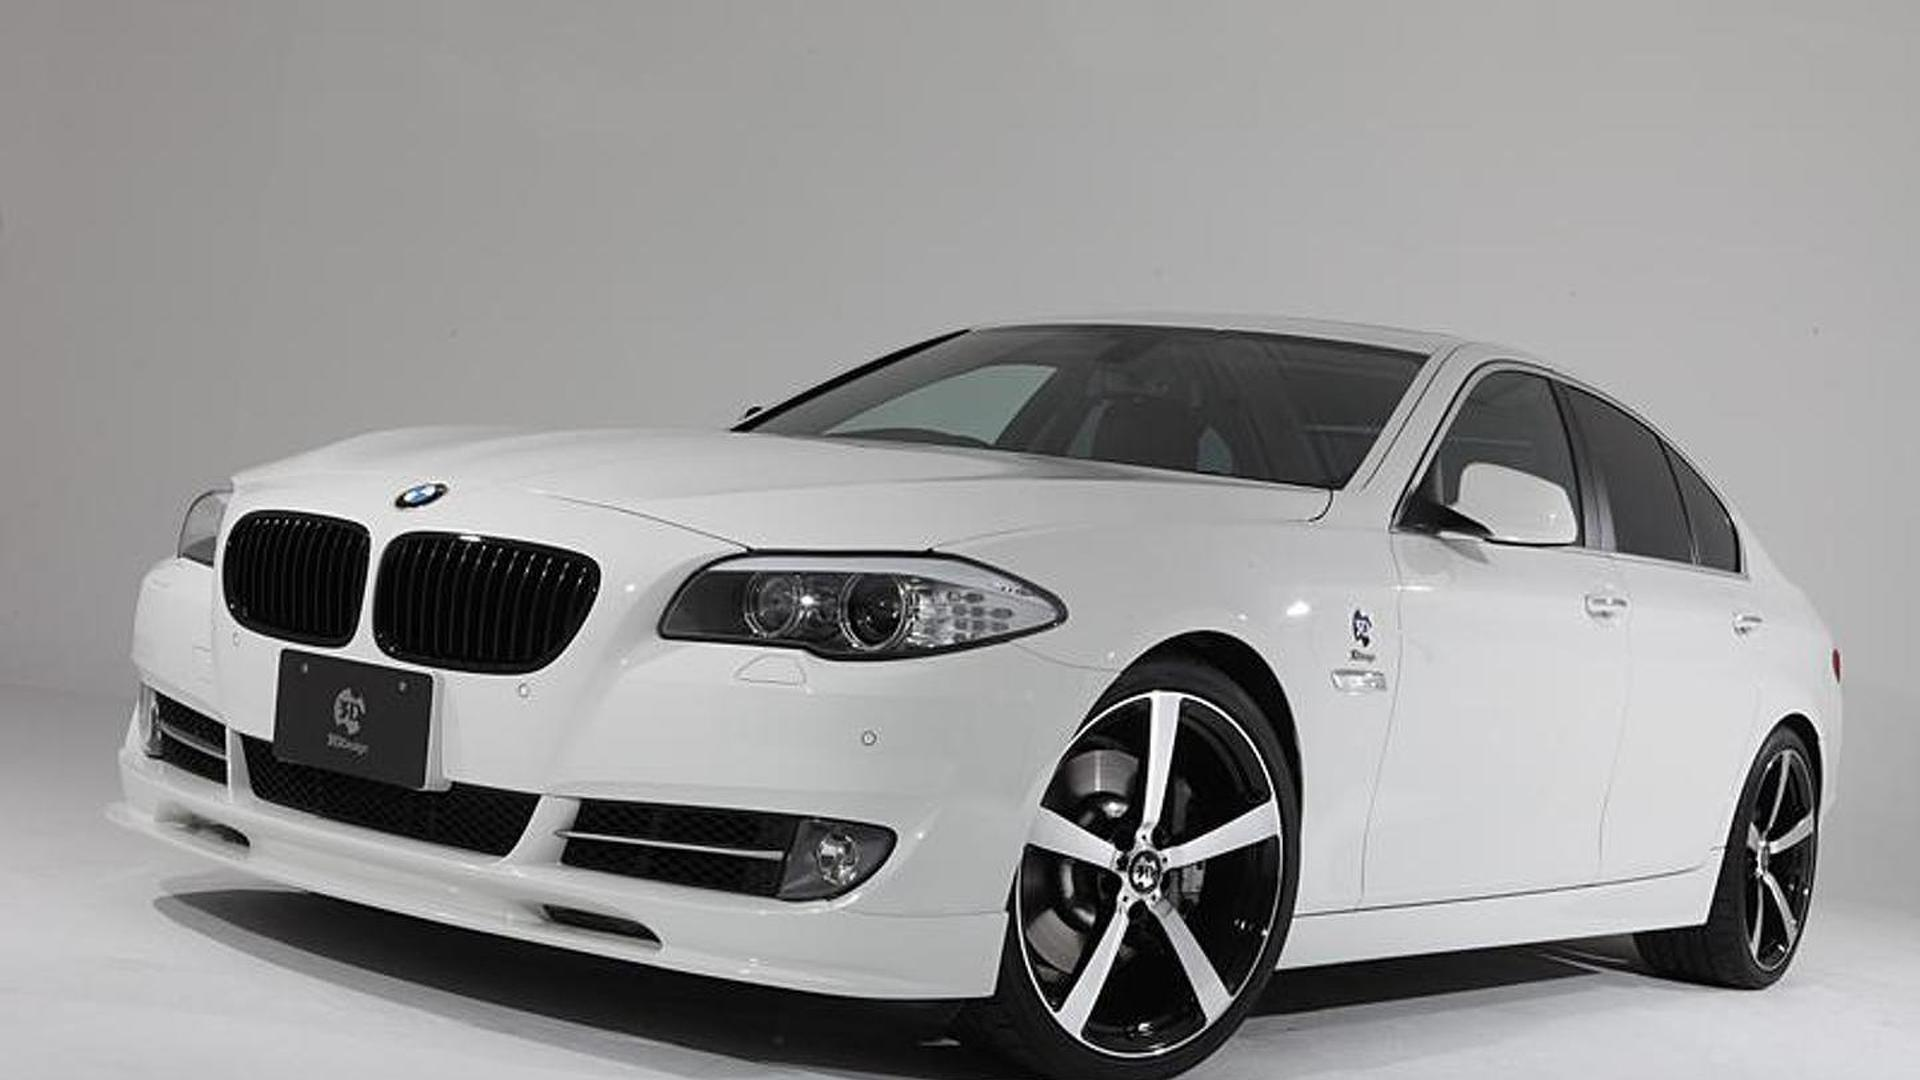 3D Design release aero kit for BMW 5-Series F10